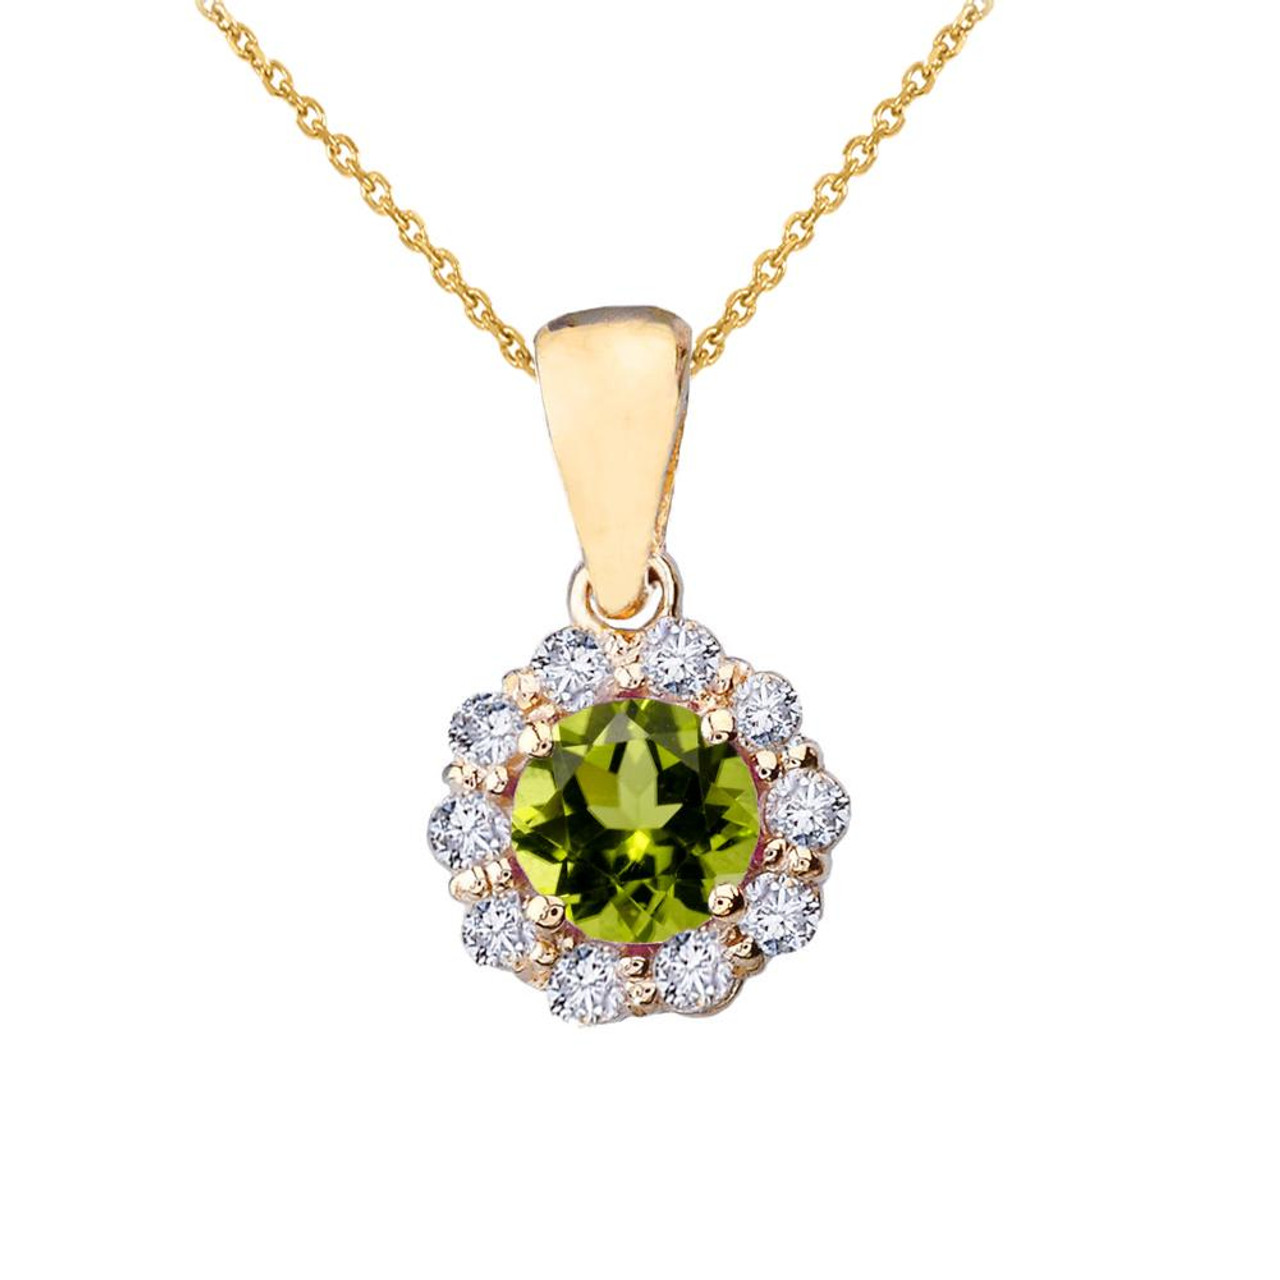 14k yellow gold dainty floral diamond center stone peridot pendant 14k yellow gold dainty floral diamond center stone peridot pendant necklace aloadofball Gallery